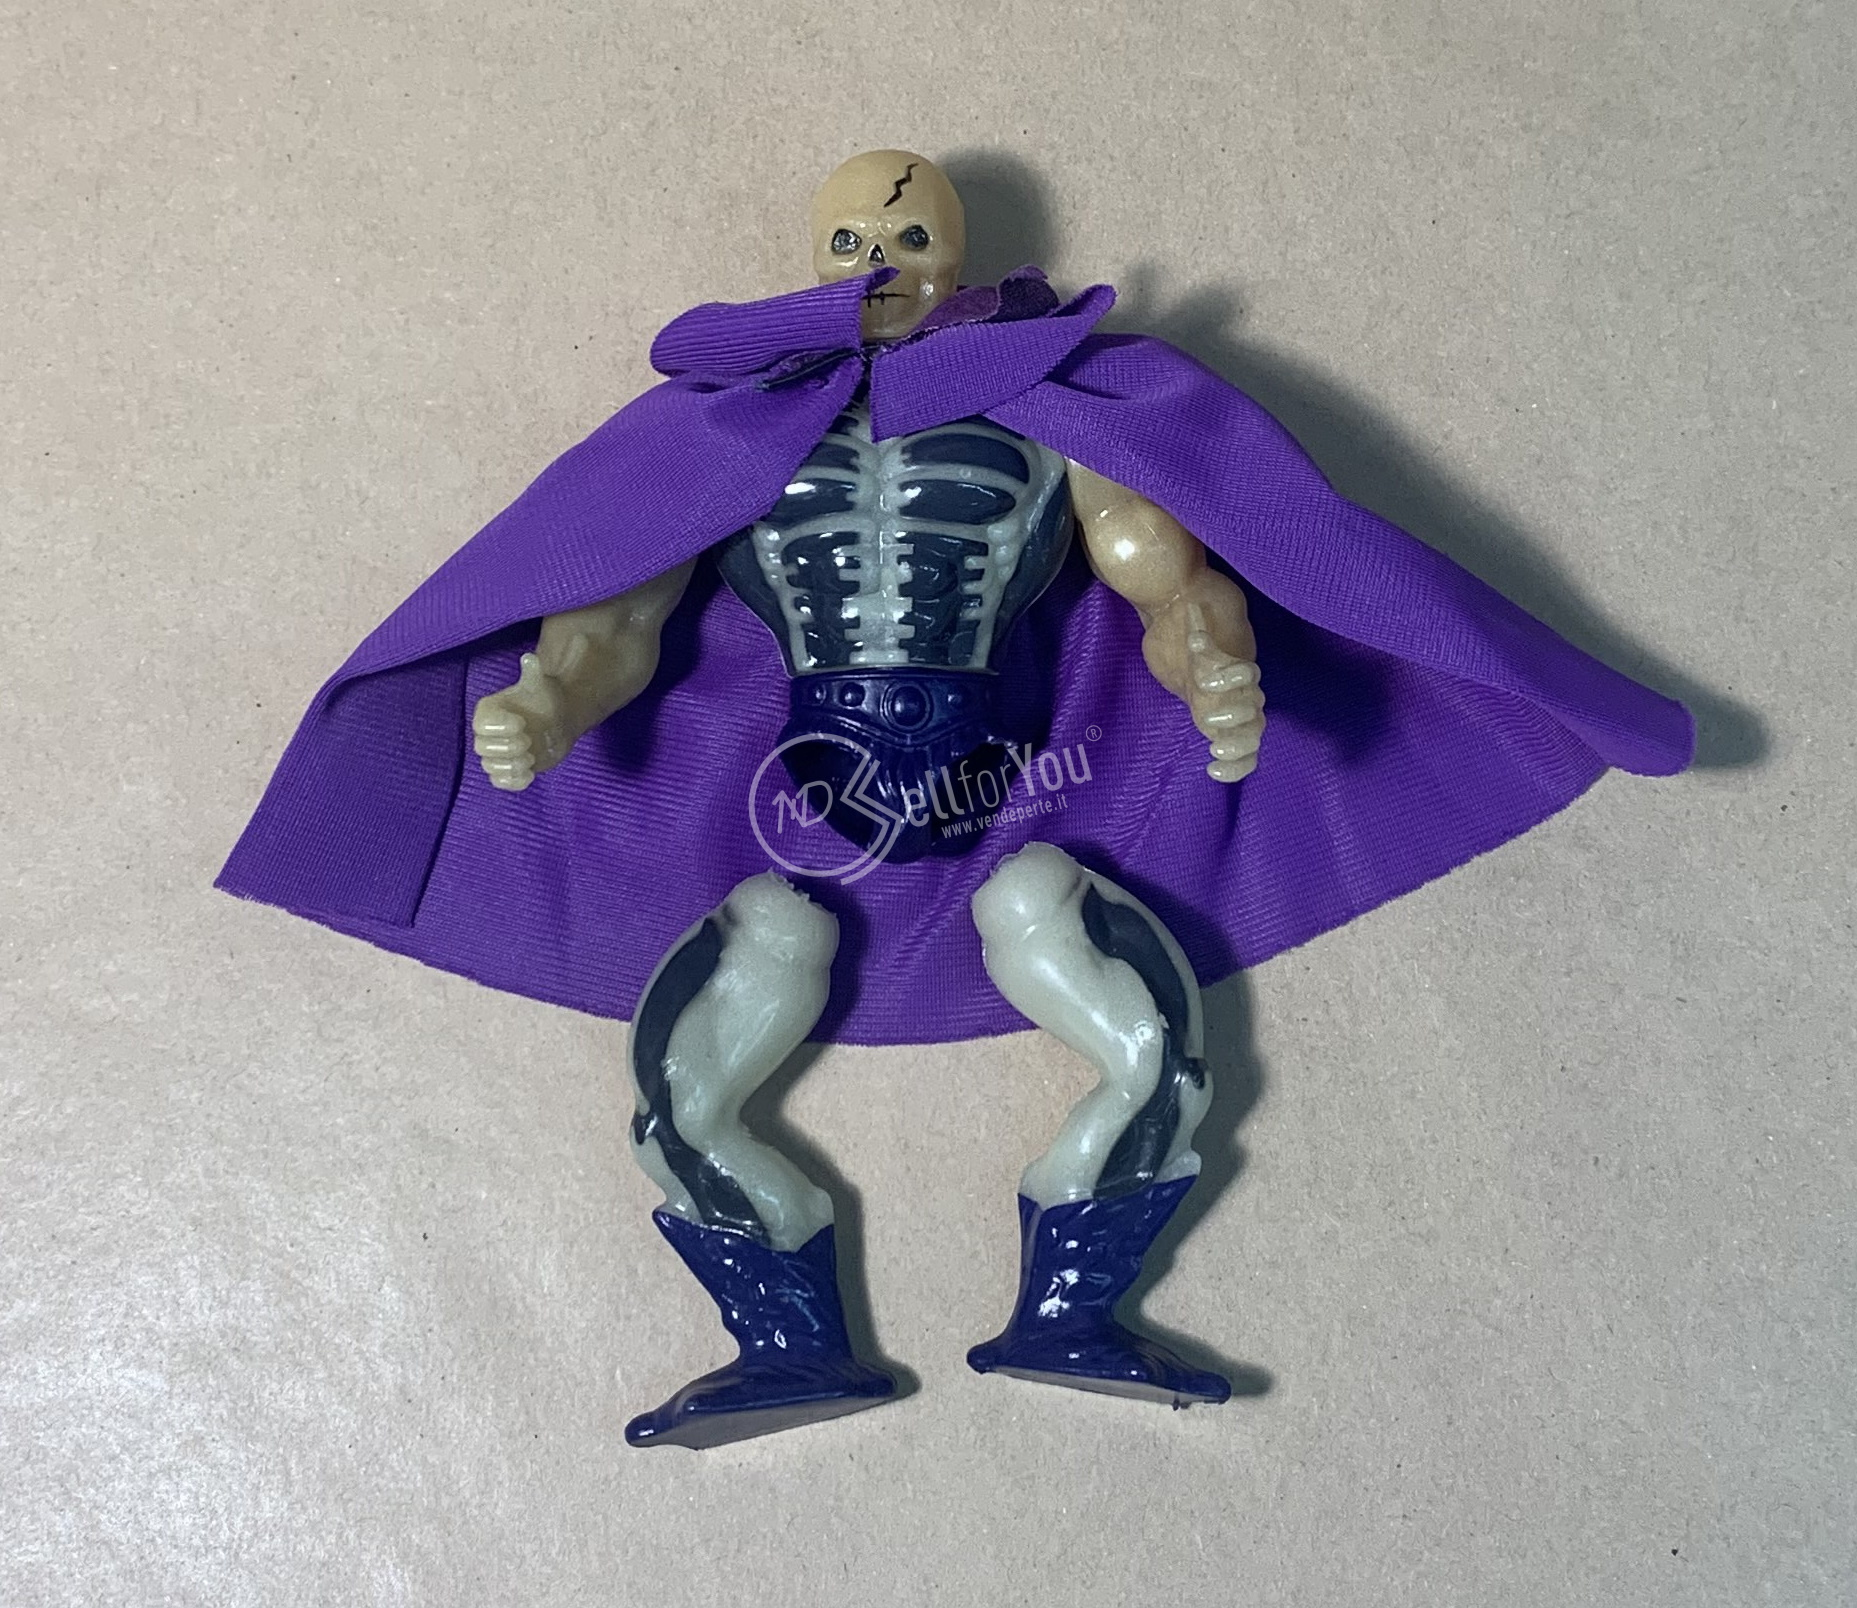 Masters of the Universe Scare Glow anni '80 Mattel 10 sellforyou